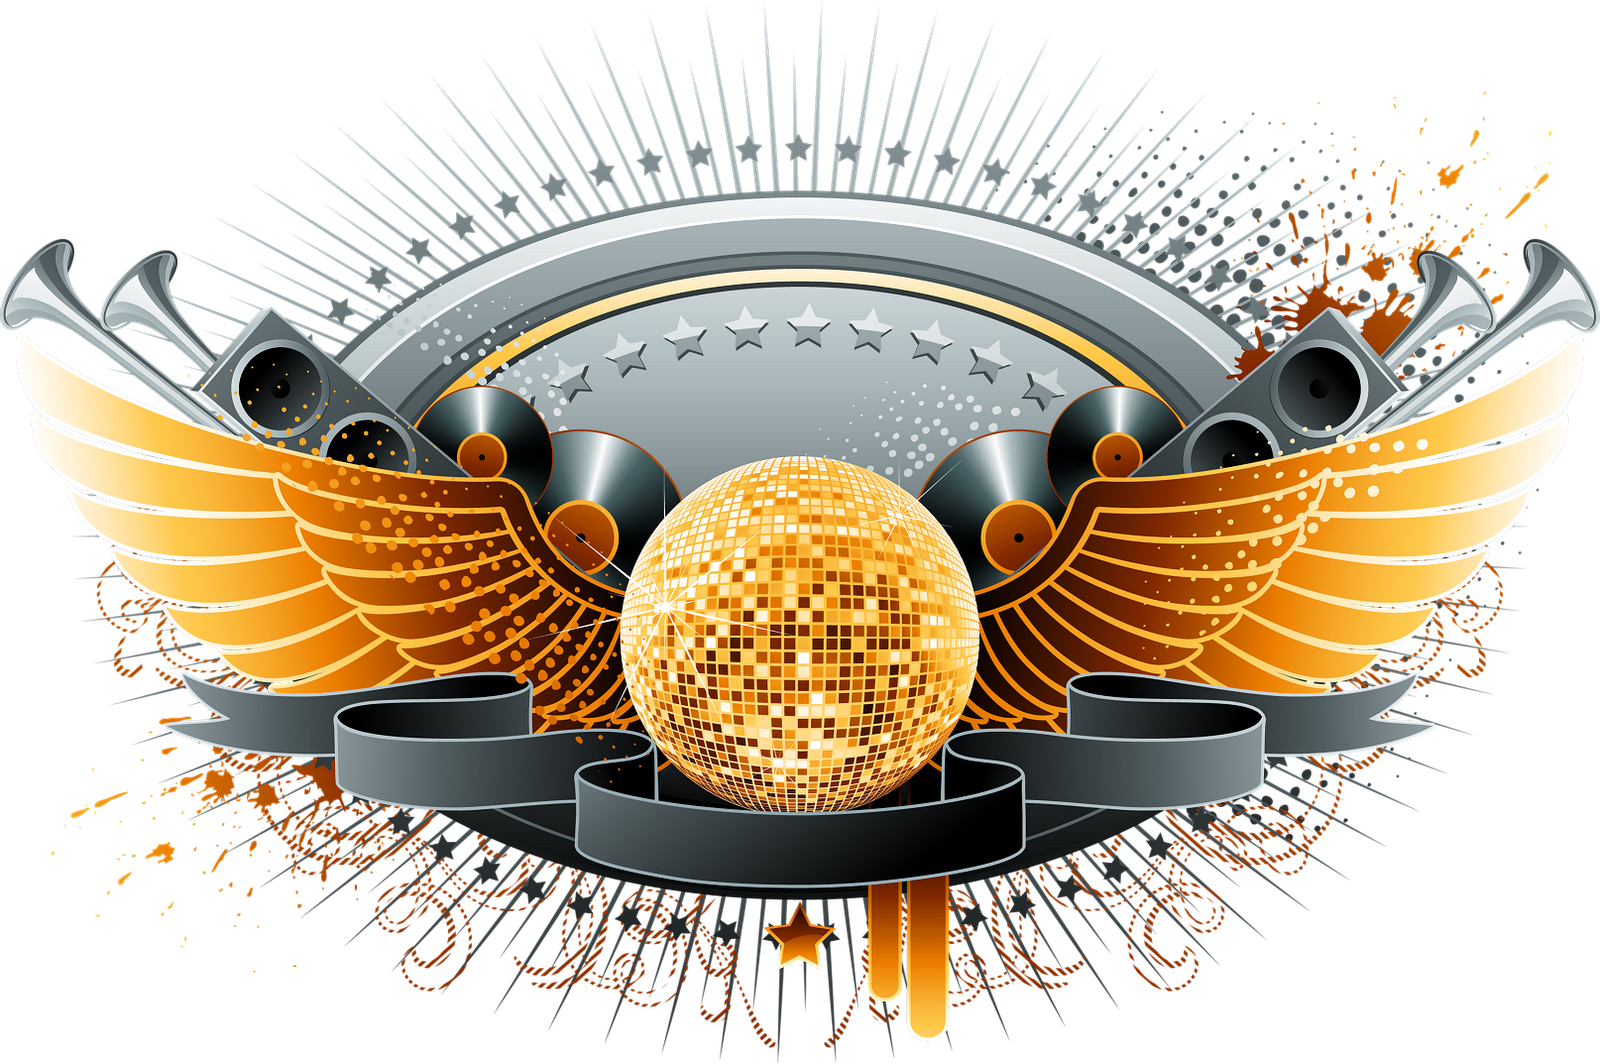 Music Png Free Download - Music, Transparent background PNG HD thumbnail